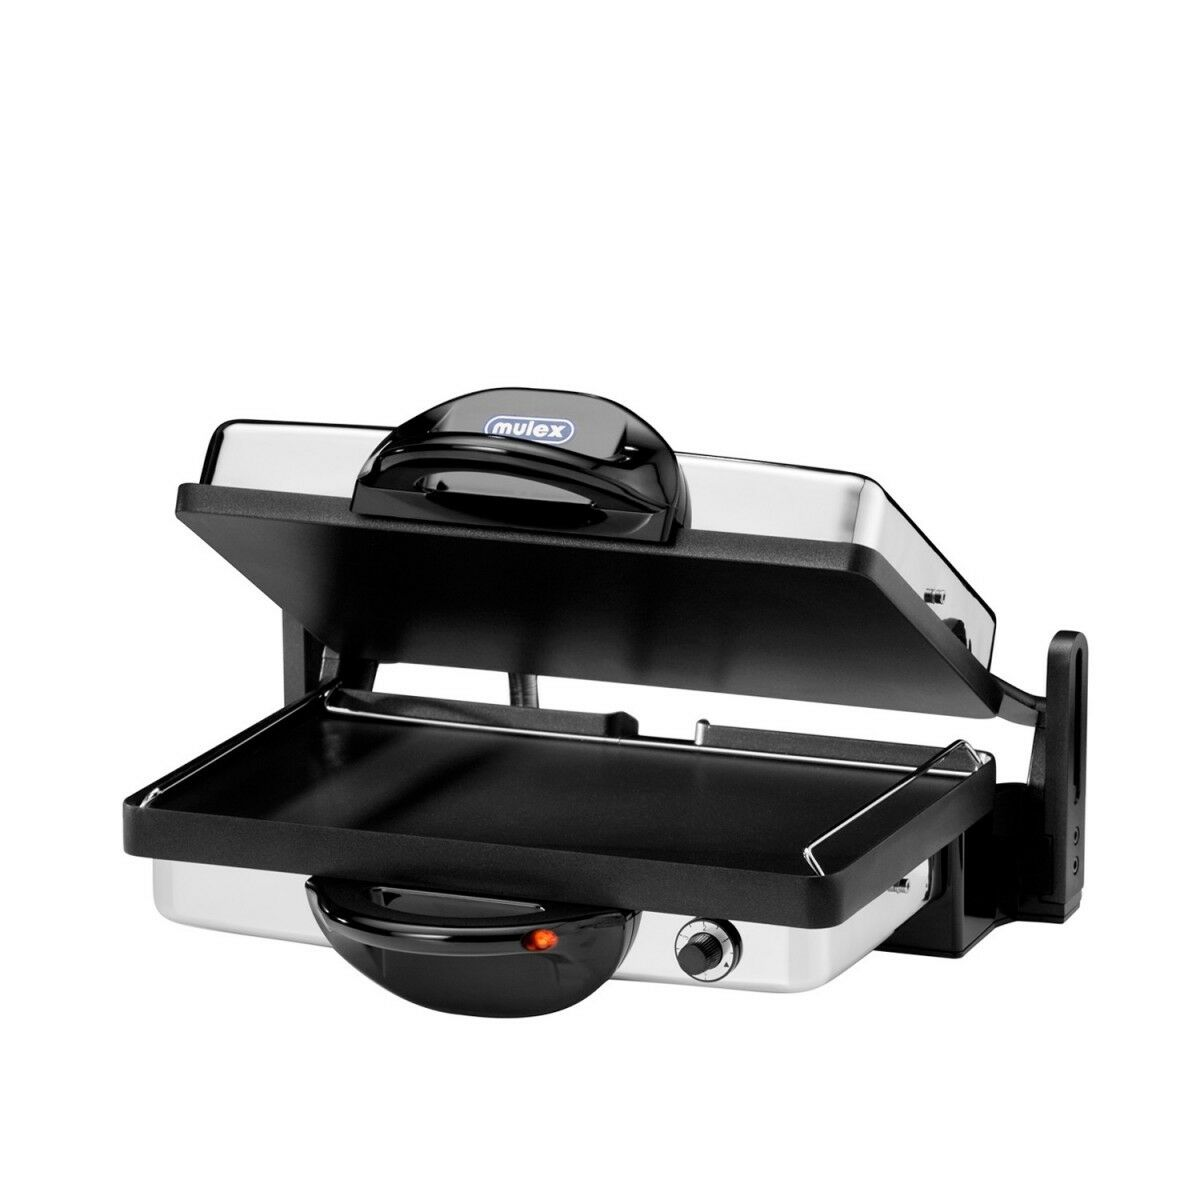 Mulex Contact Grill mx355 2200 W BARBECUE SANS GRAISSE